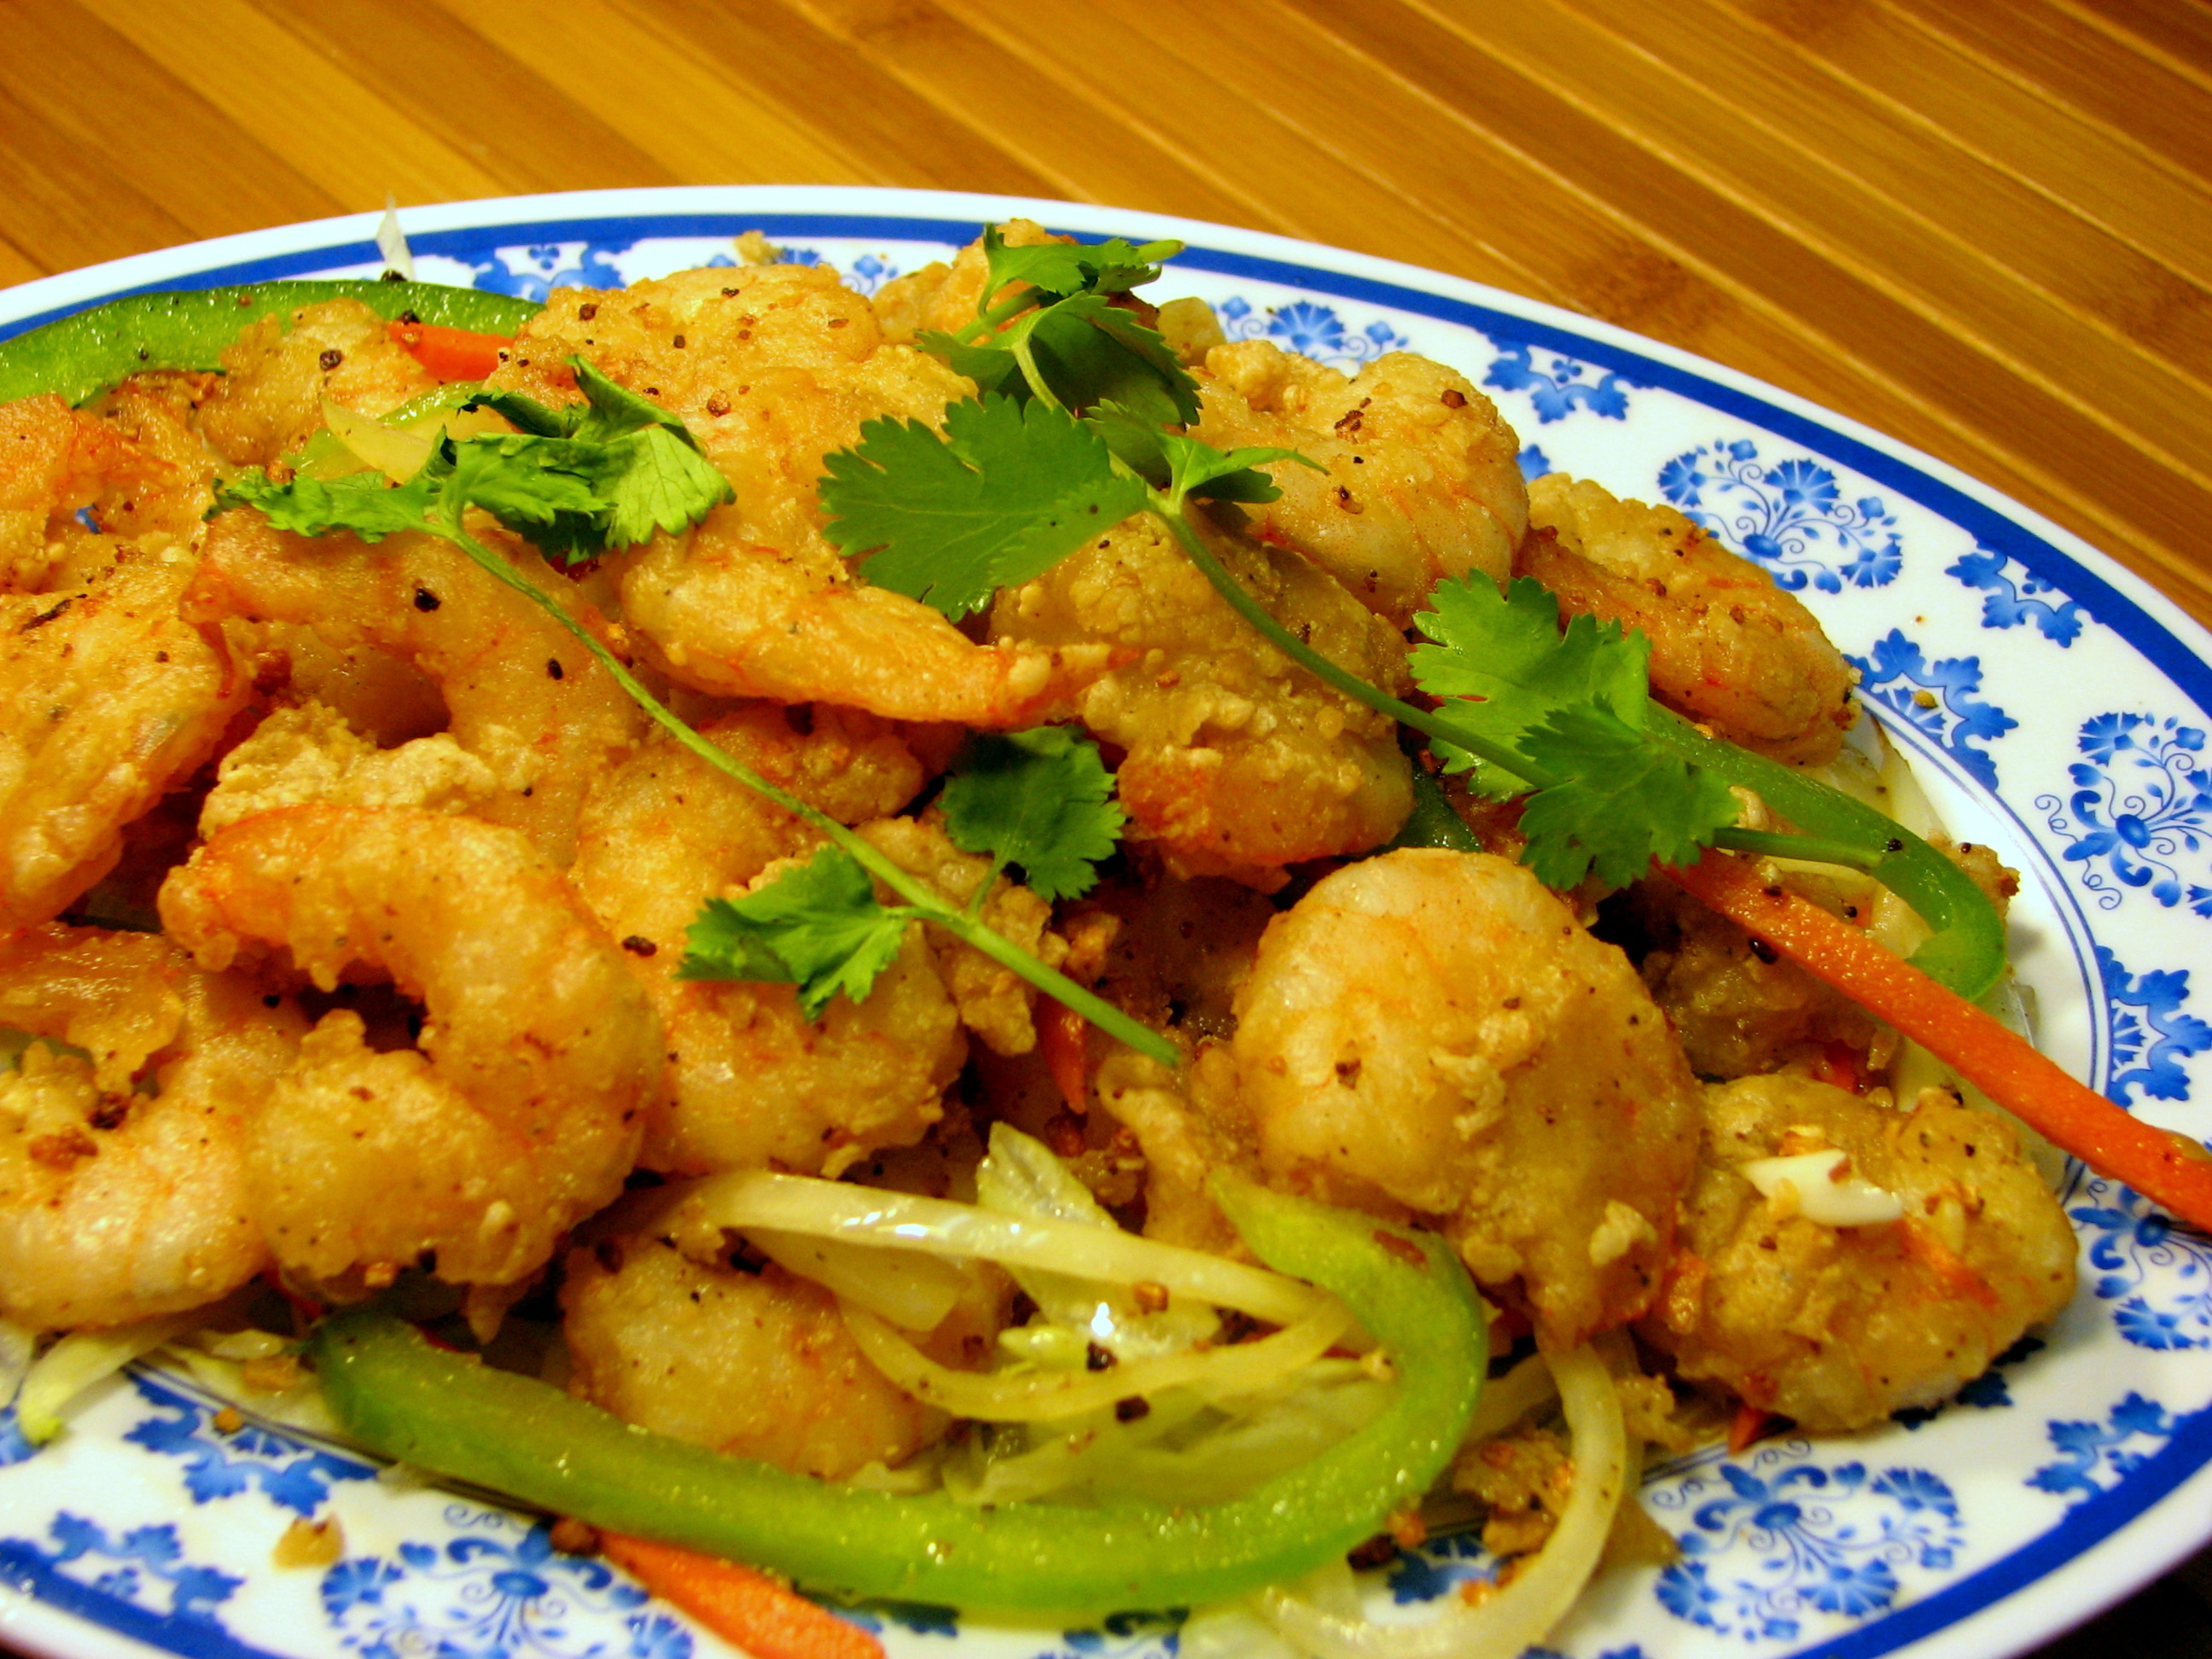 fried prawns with shells pan fried shrimp with shells removed